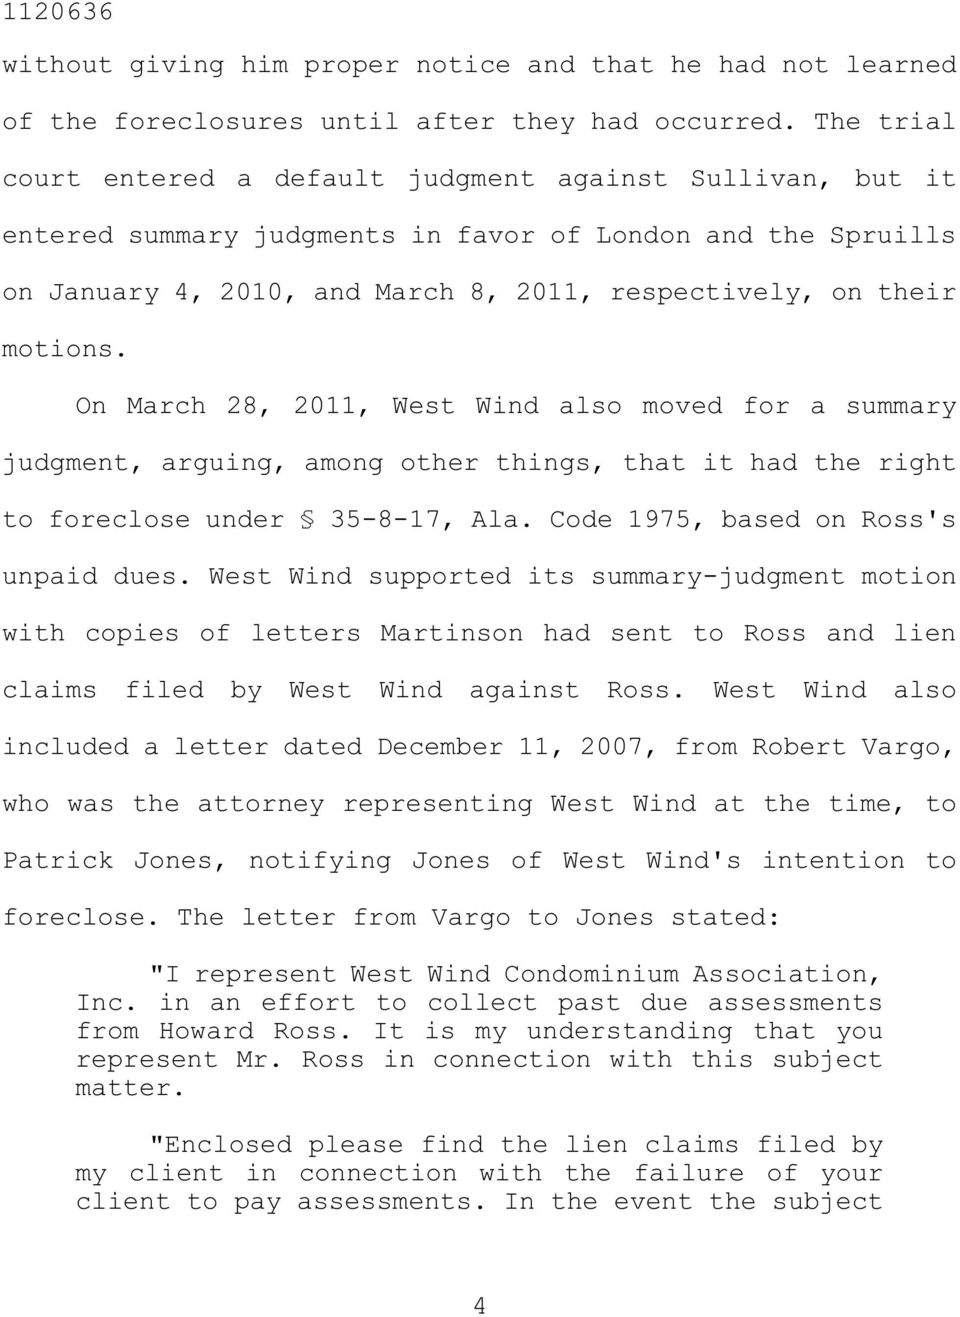 On March 28, 2011, West Wind also moved for a summary judgment, arguing, among other things, that it had the right to foreclose under 35-8-17, Ala. Code 1975, based on Ross's unpaid dues.